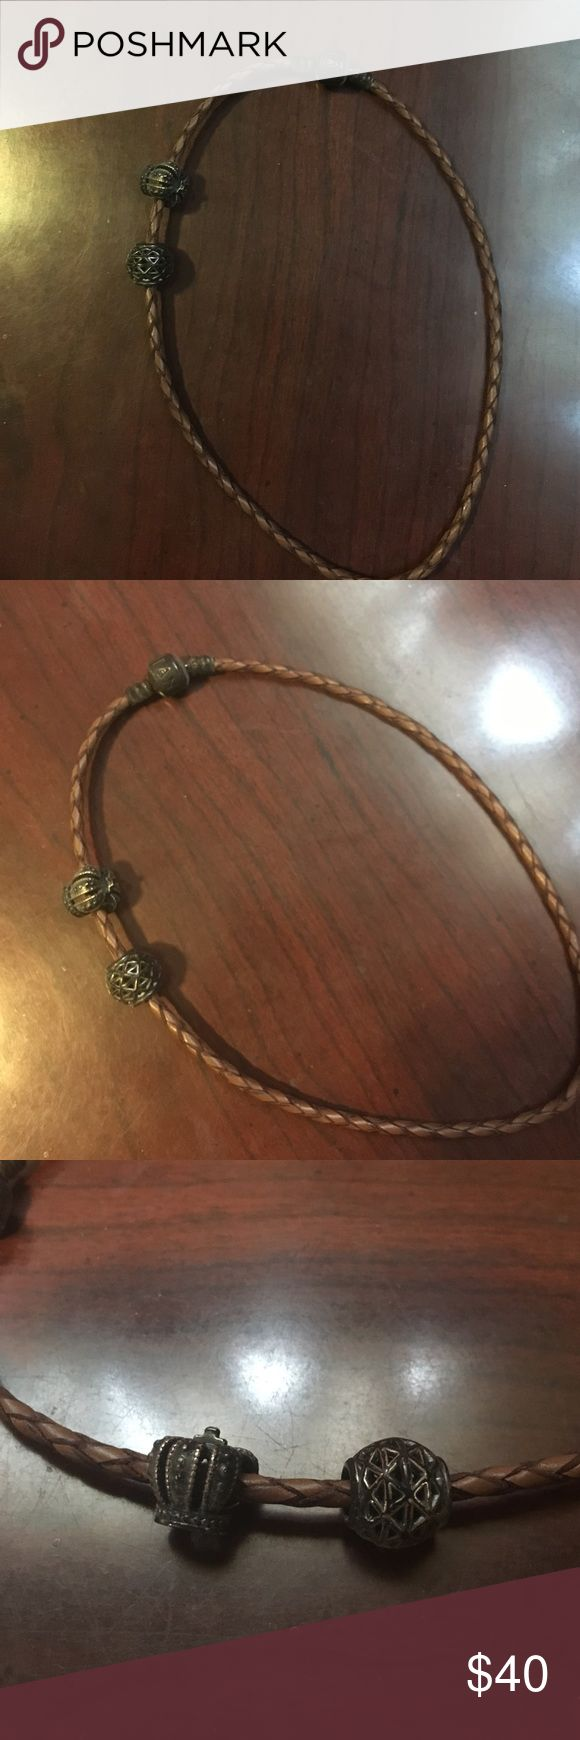 Pandora rope bracelet Pandora rope bracelet with two charms! Cute but I never bought more charms. Great condition! Will accept offers Pandora Jewelry Bracelets